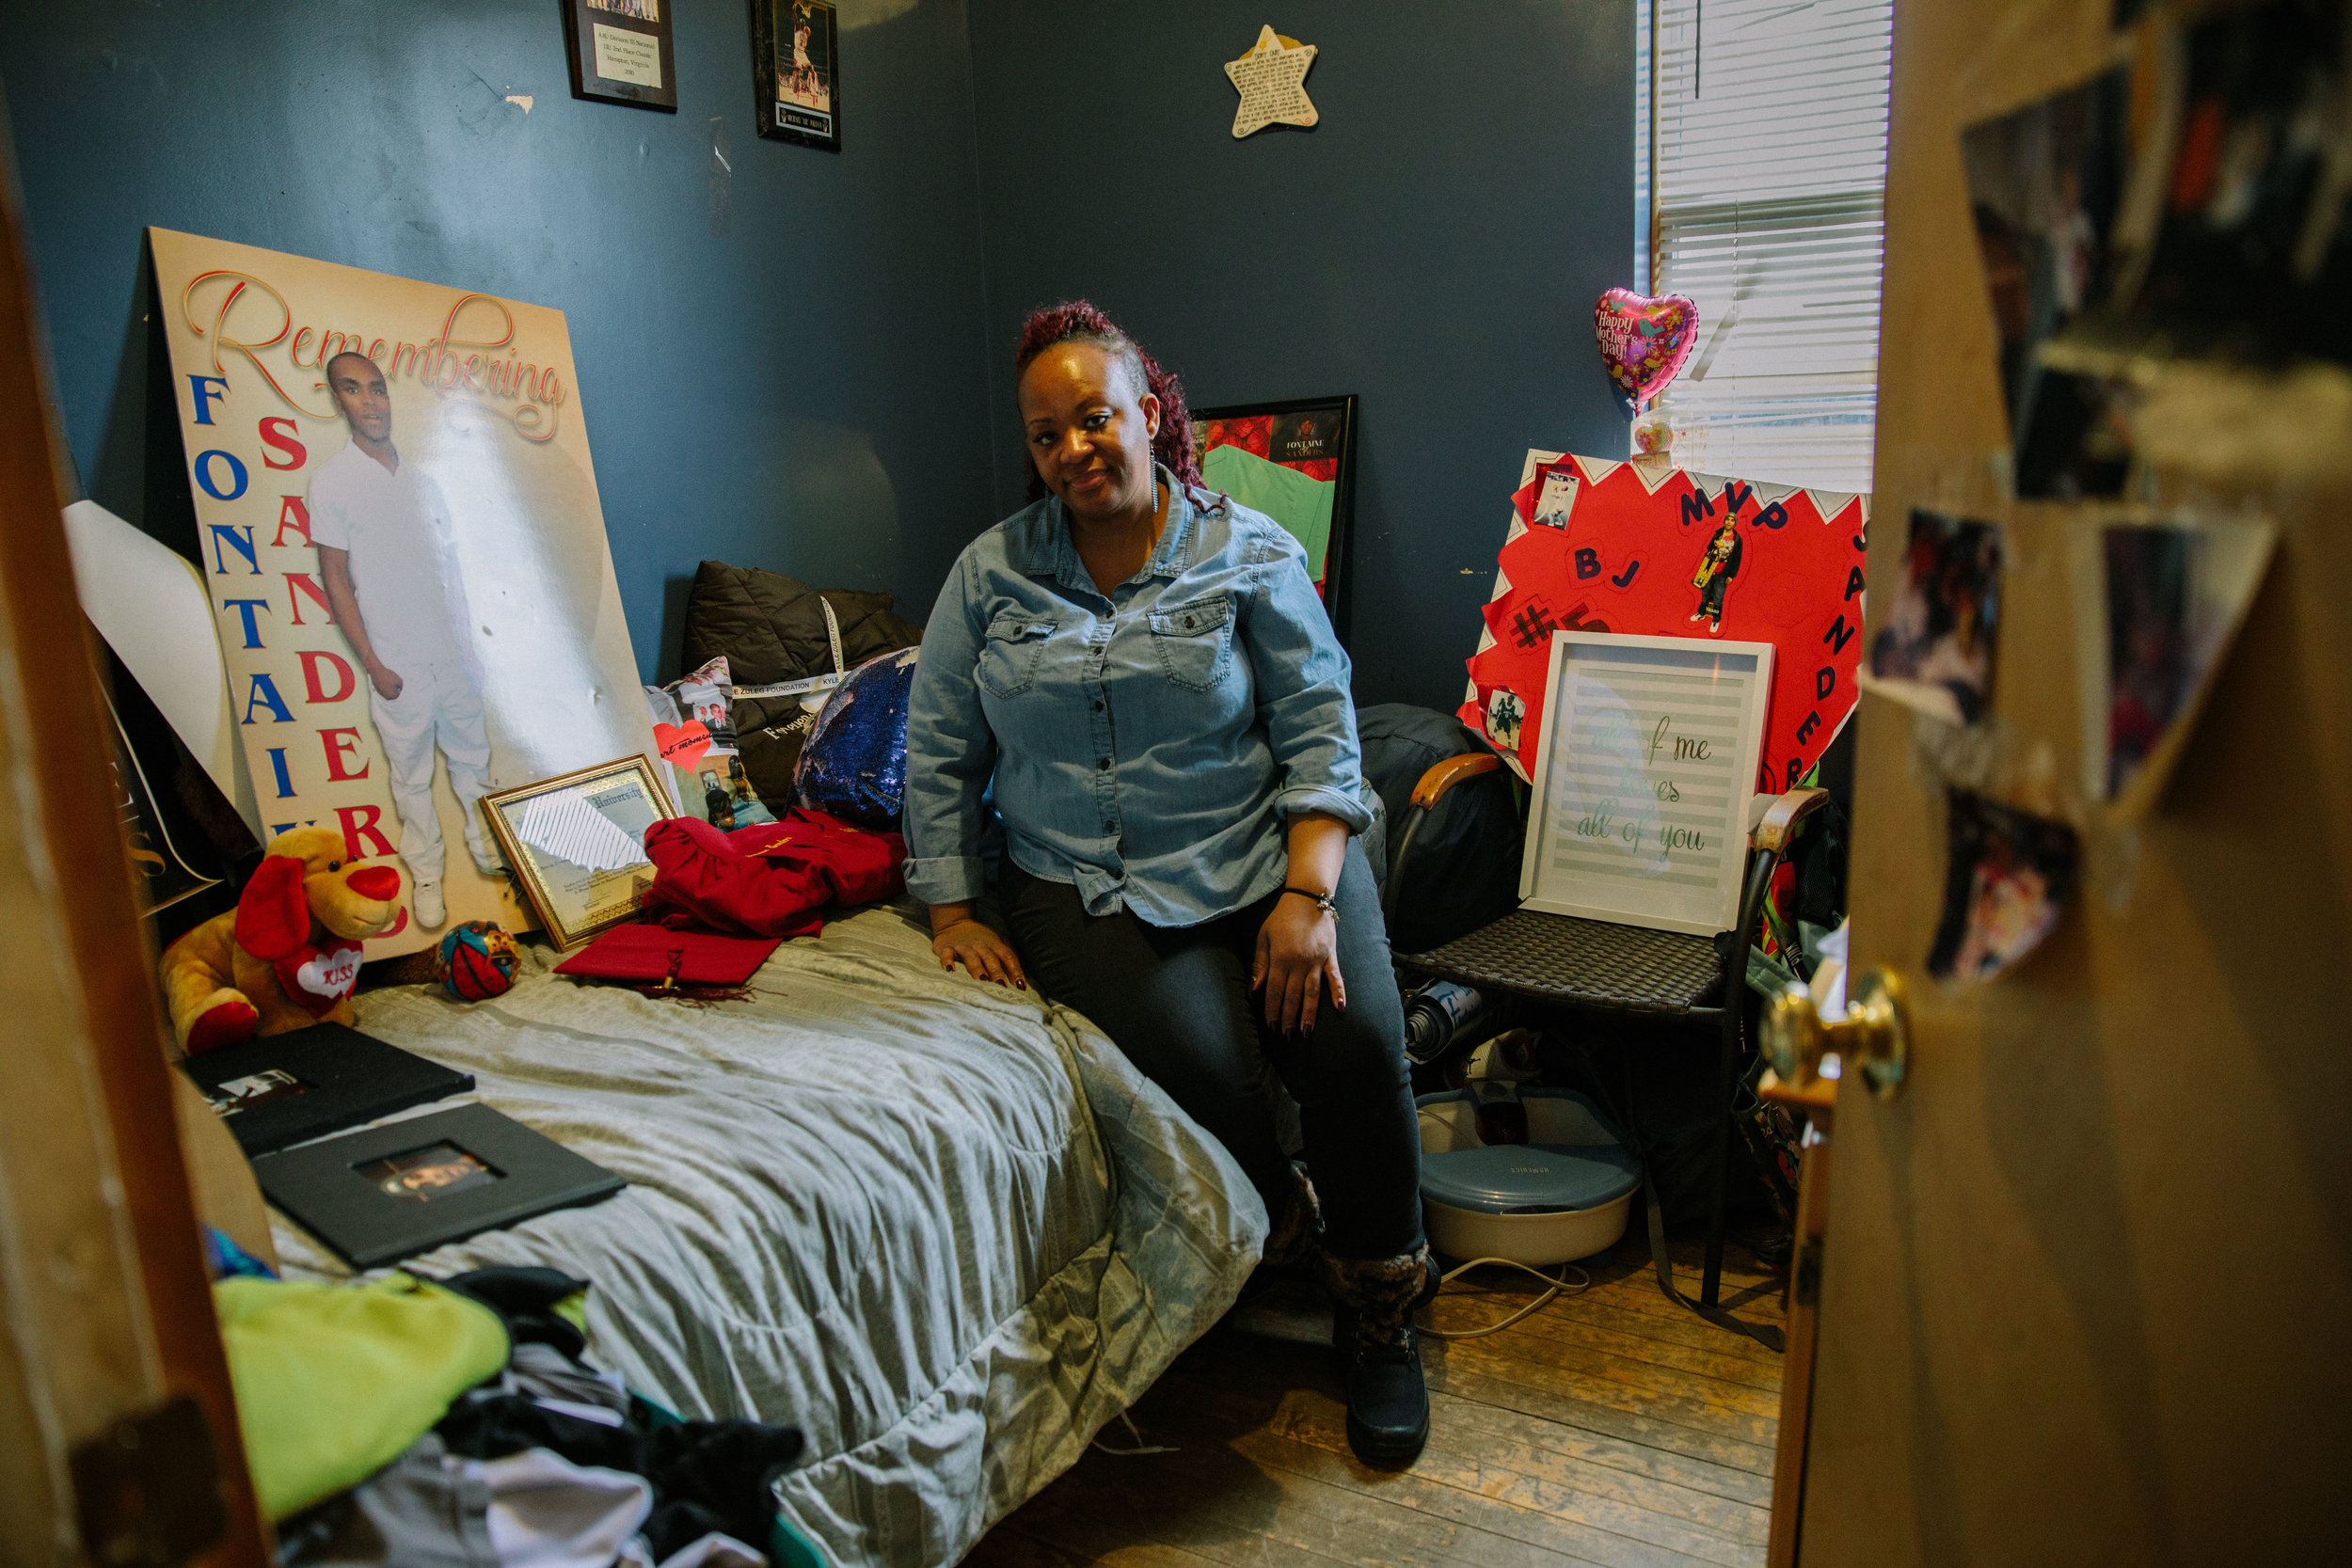 """Corniki Bornds sits on the bed in the room of her late son, Fontaine """"BJ"""" Sanders. BJ was shot and killed as he walked to Franklin Park to play basketball with his friends in 2017. Corniki said it was too painful to enter her son's room for over 6 months after his murder, but now she finds solace inside. Corniki often sits in her son's room to journal, think and look at momentos of him. In the wake of her son's death, Corniki found support through other mother's who have lost children to gun violence in Chicago in a support group run by Parents for Peace and Justice. MCC partners with Parents for Peace and Justice to help support their advocacy and support work in Chicago."""